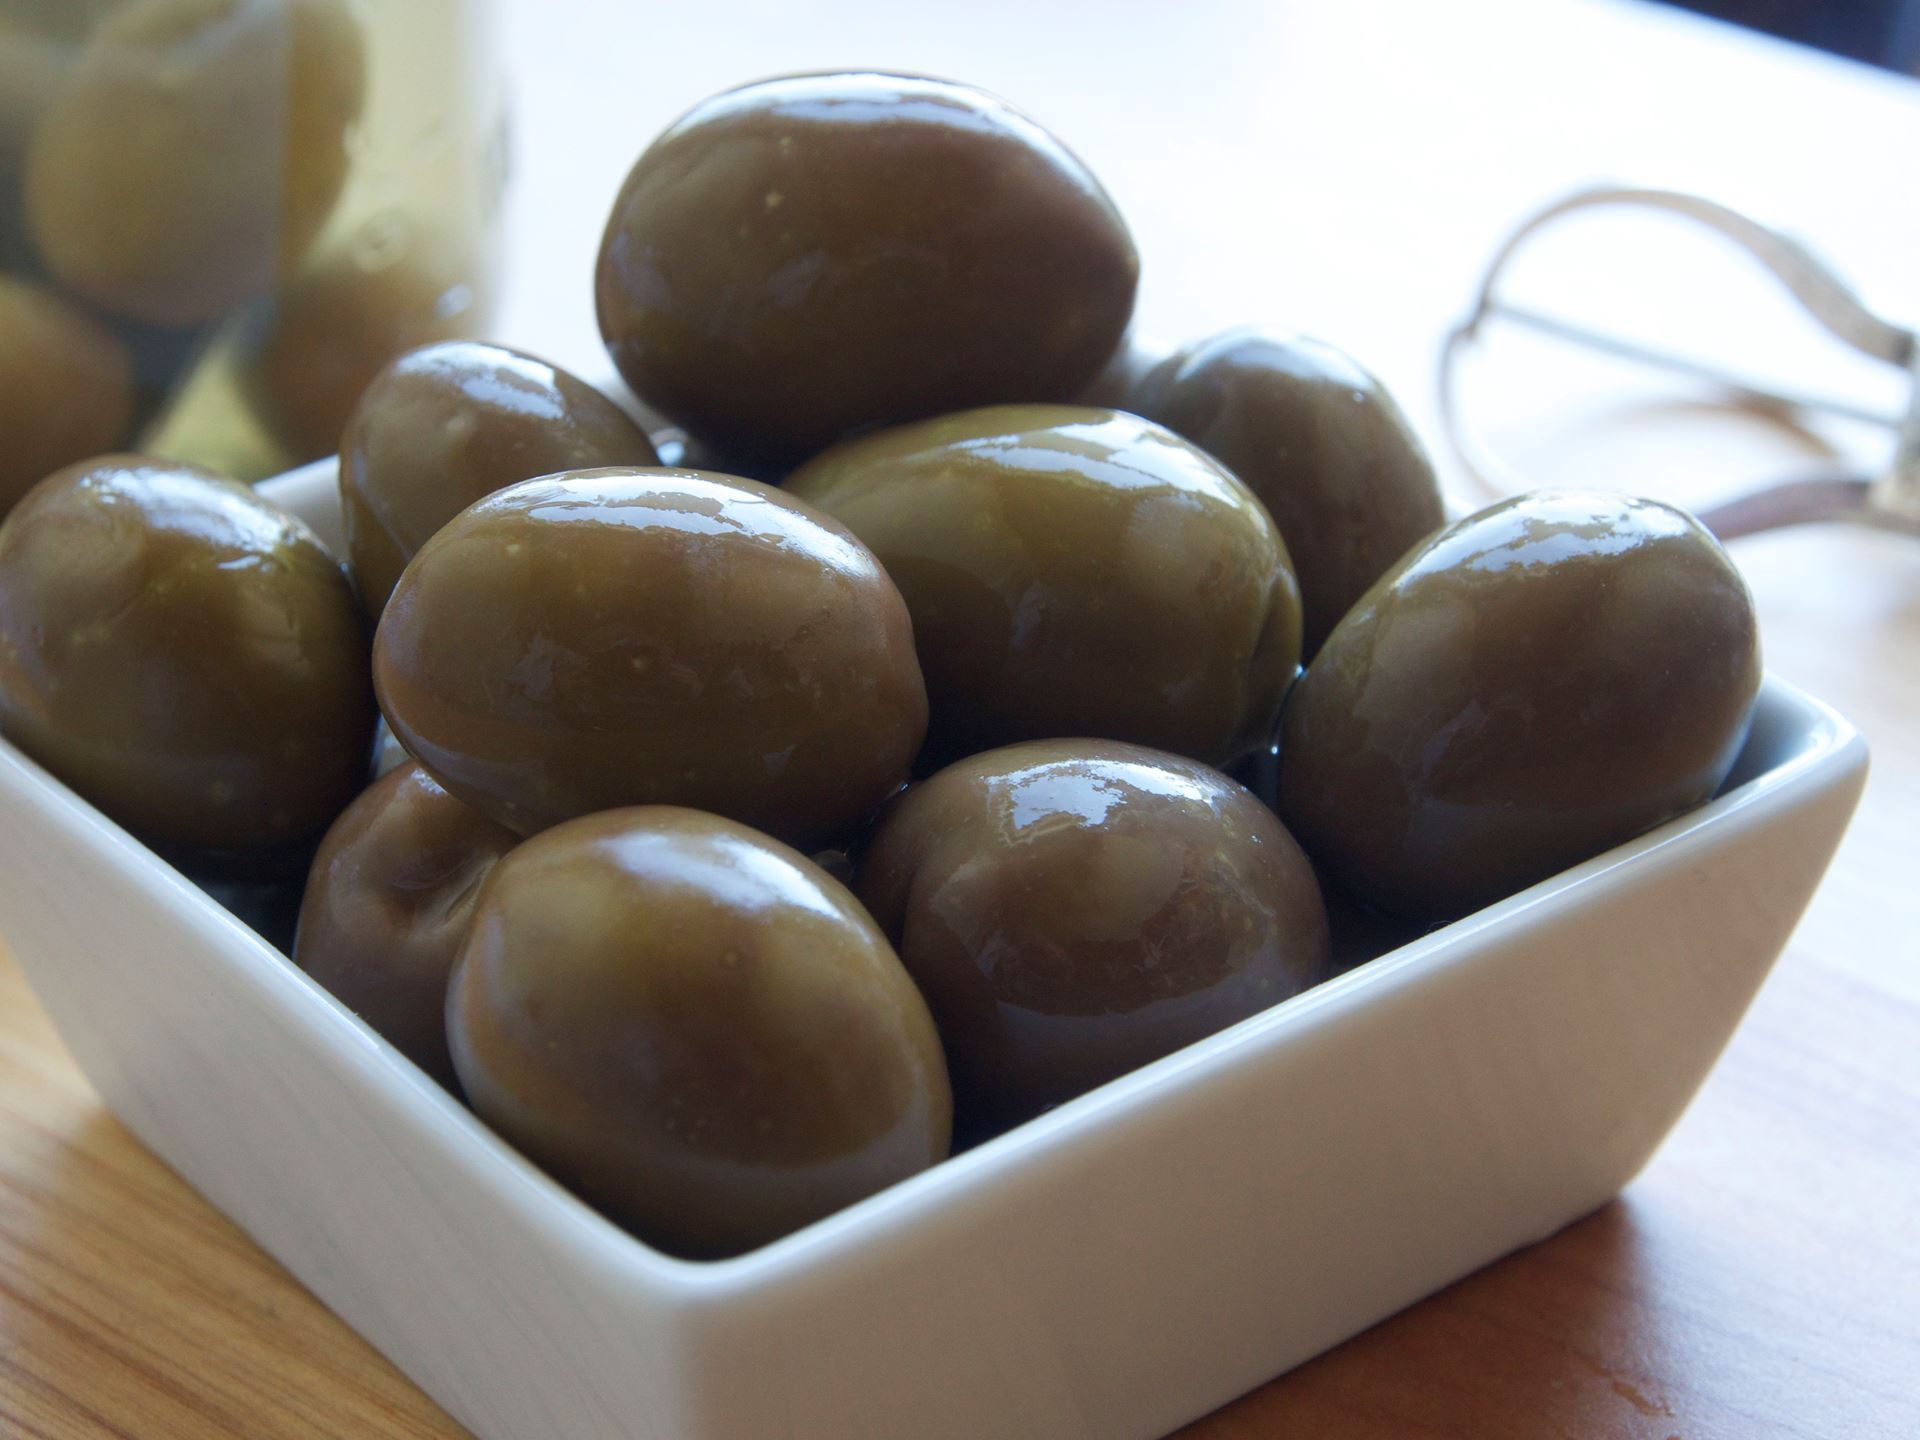 Picture of Good Faith Farm Raw Sevillano Olives